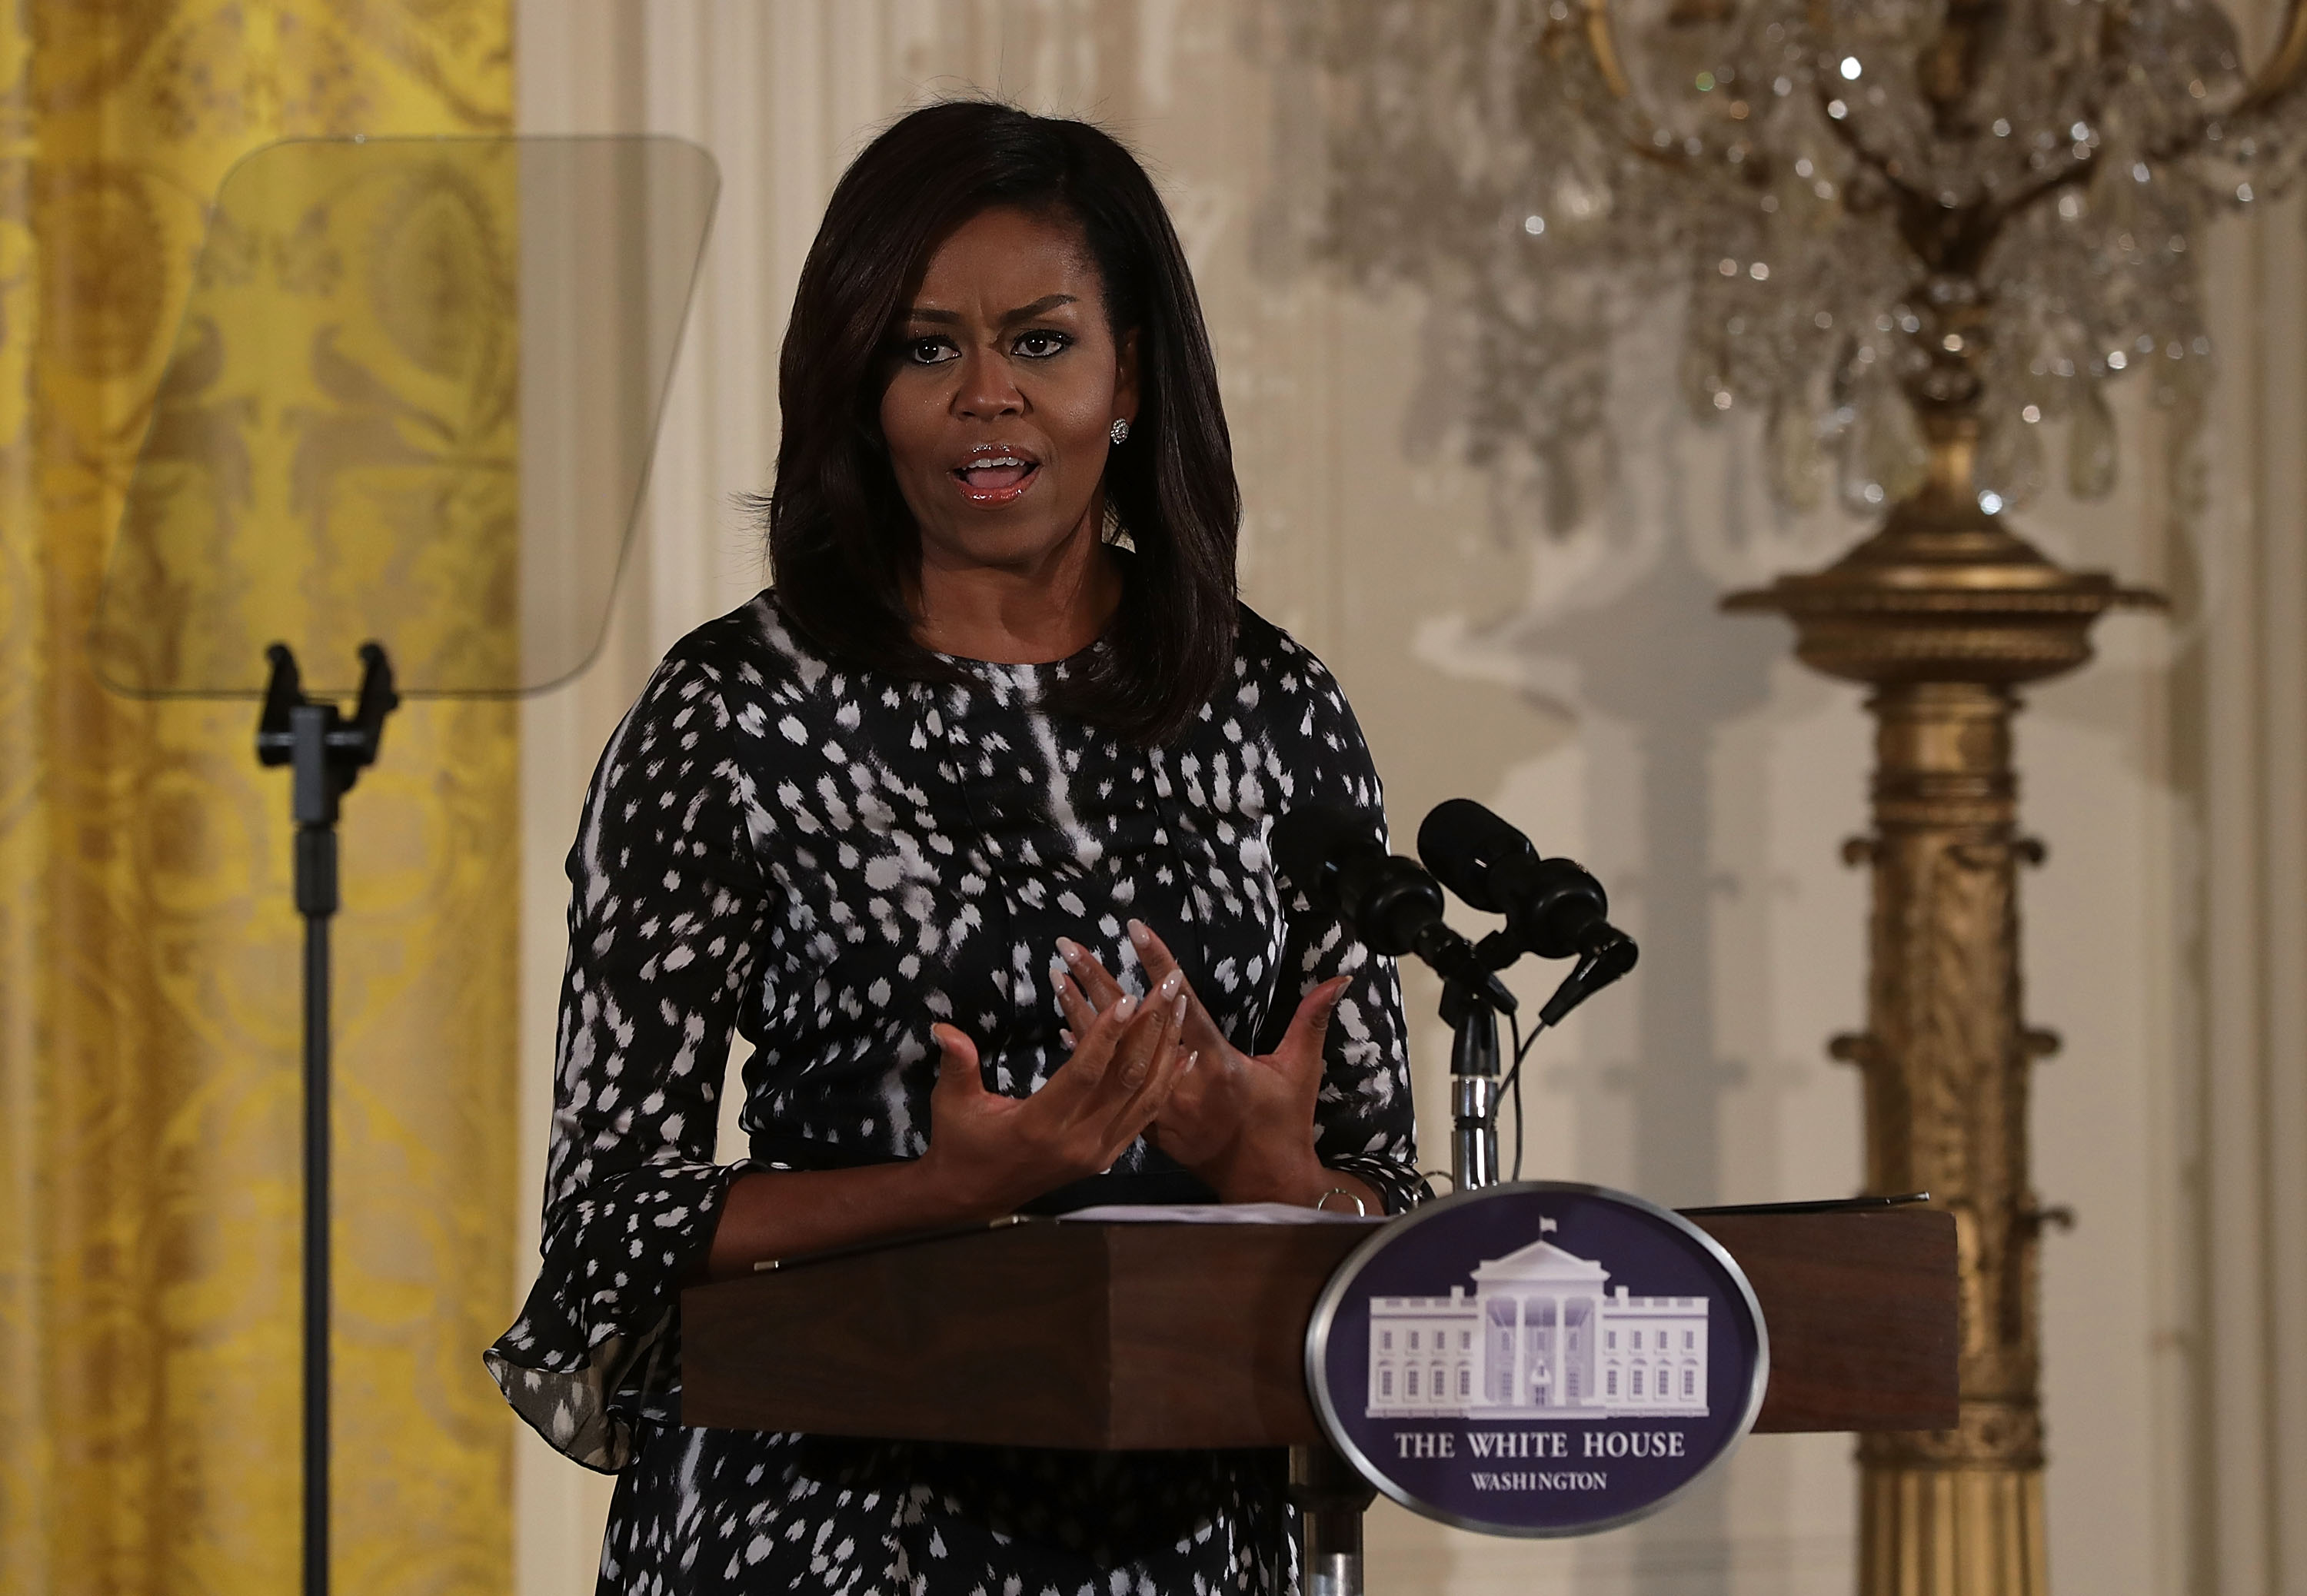 U.S. First Lady Michelle Obama speaks during an event to celebrate 20th Century Art in the White House October 14, 2016 in Washington, DC.